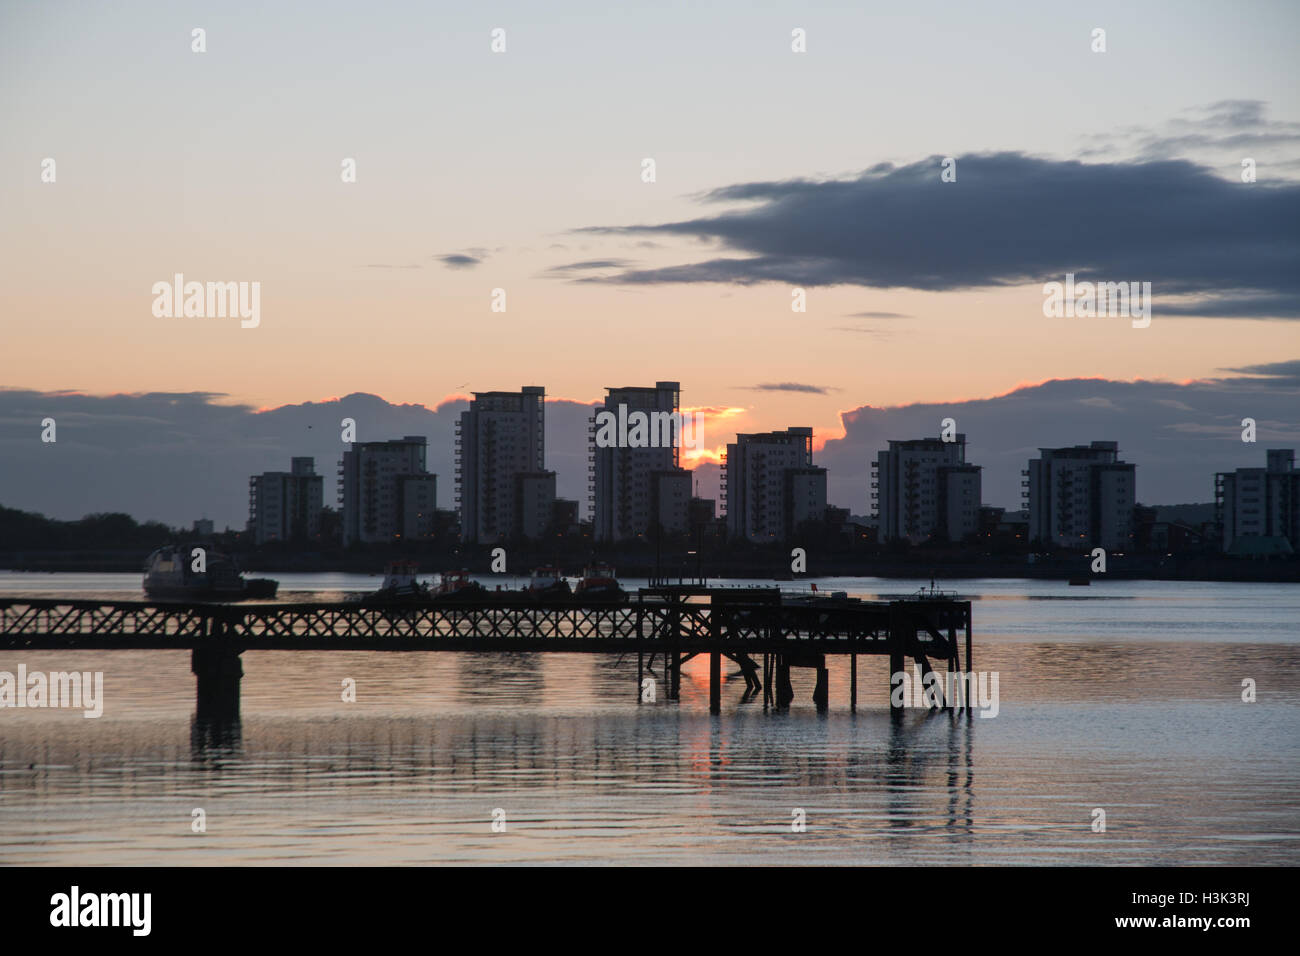 River Thames, Woolwich, London, UK, Sunday 9th October 2016. UK weather: Clear skies on autumn morning at sunriseStock Photo